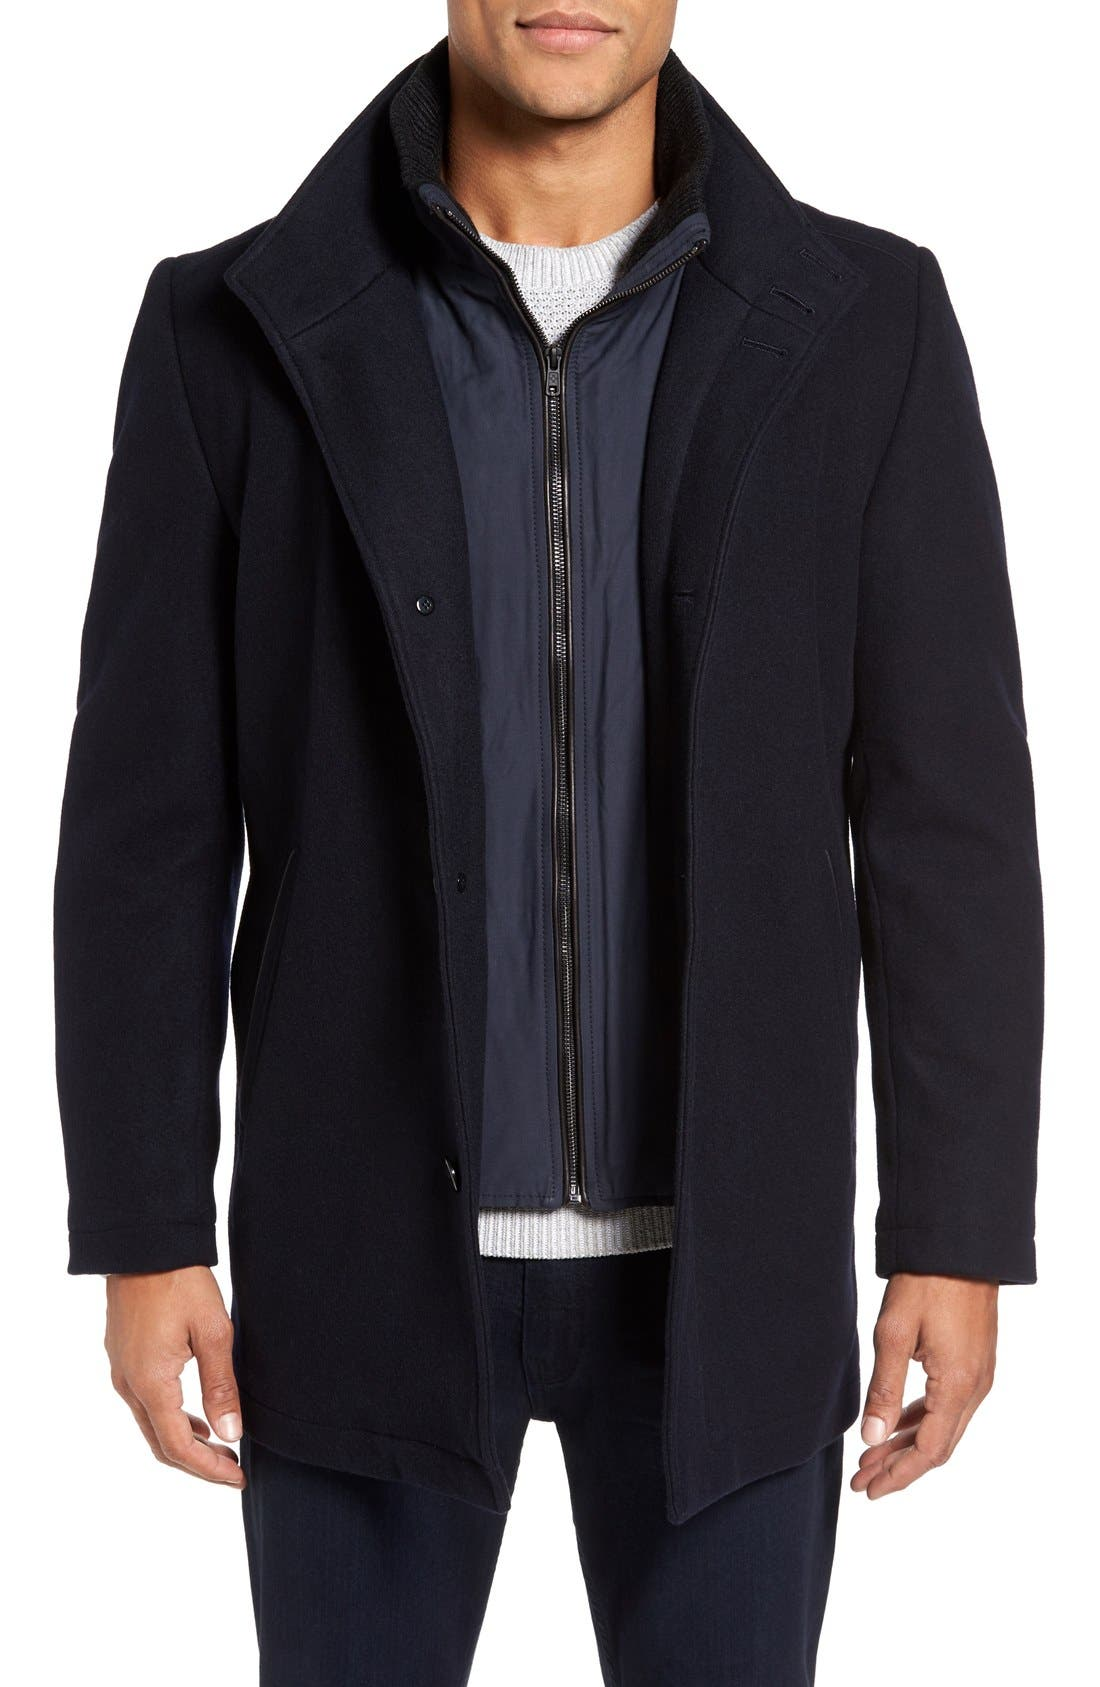 VINCE CAMUTO,                             Classic Wool Blend Car Coat with Inset Bib,                             Main thumbnail 1, color,                             NAVY